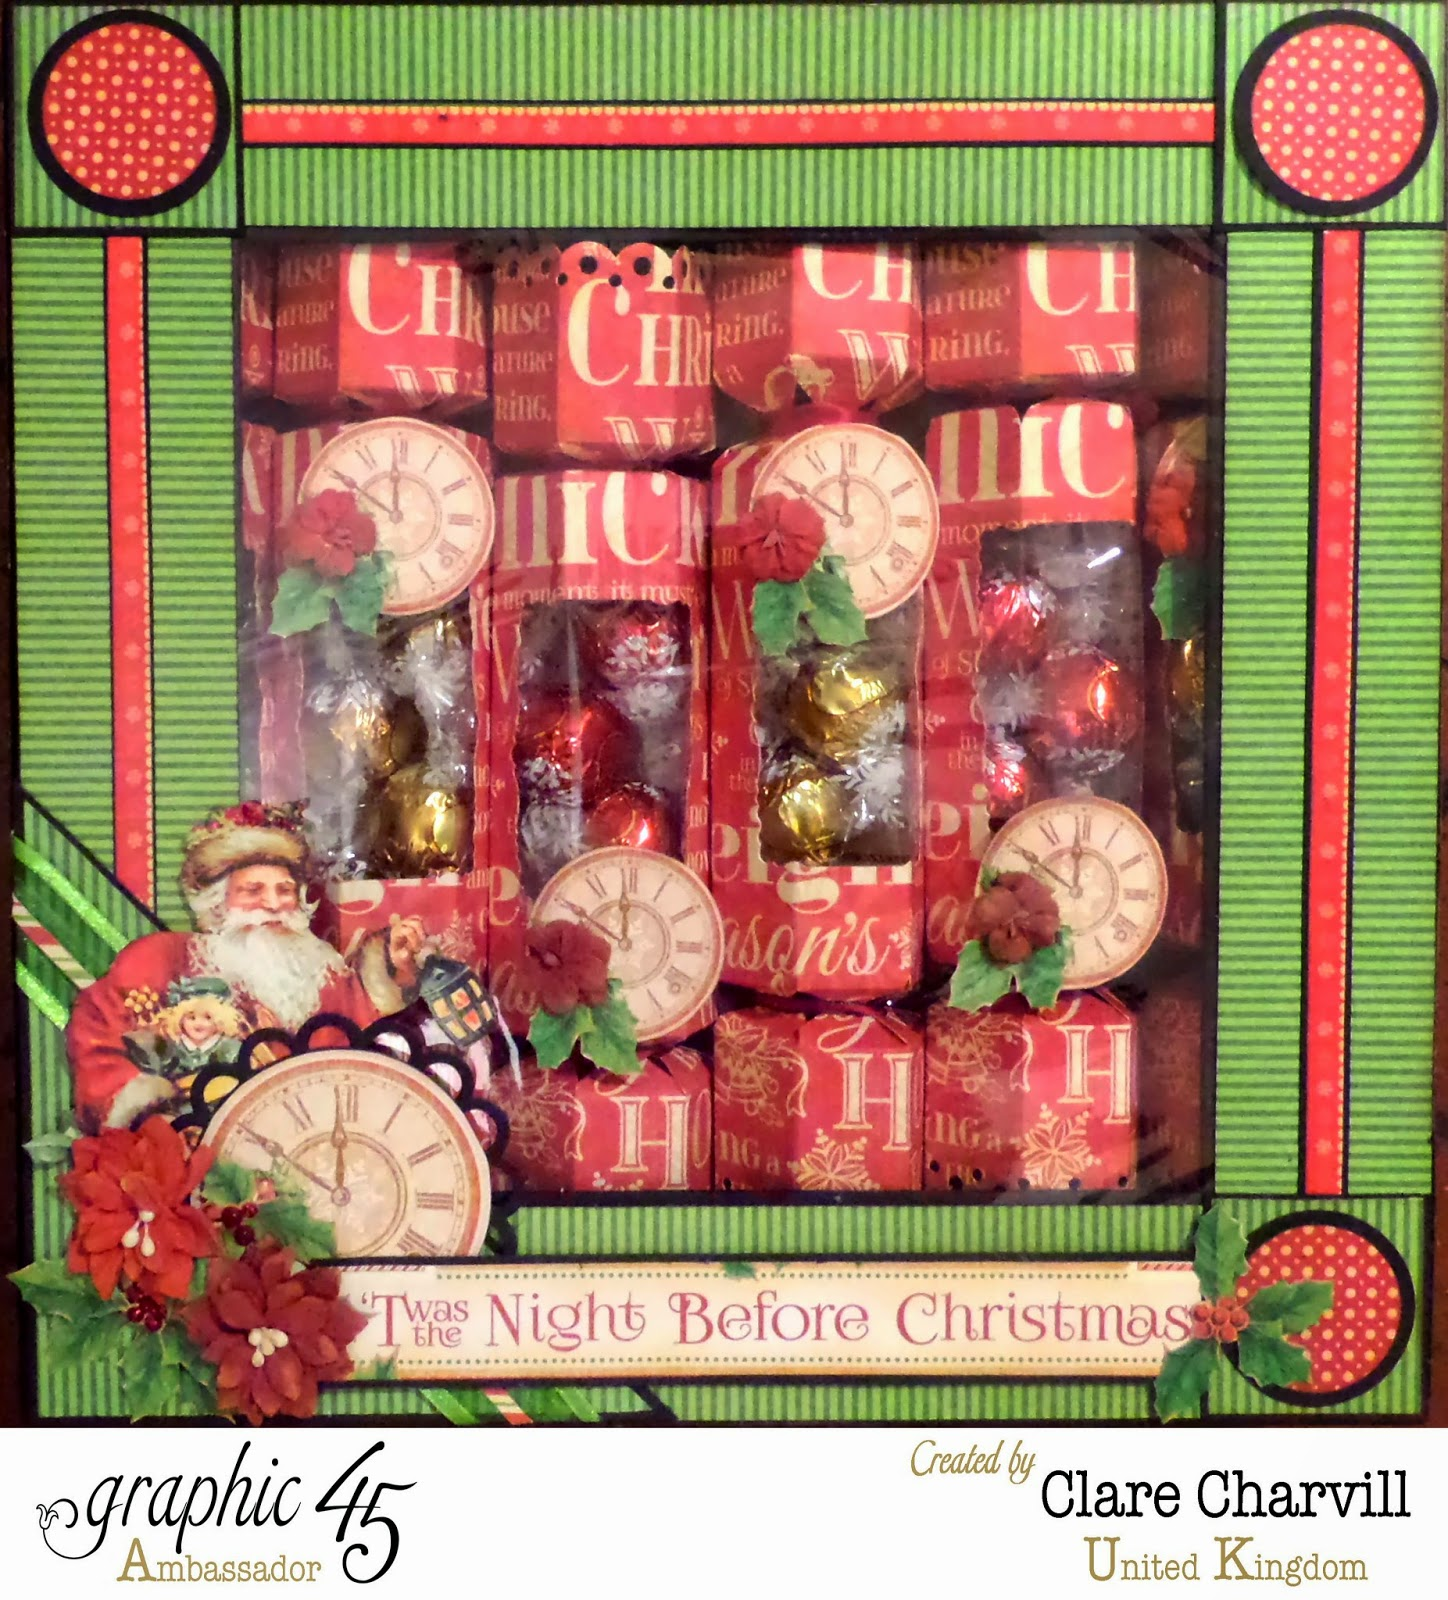 Twas the Night Before Christmas Box of Crackers 1 Clare Charvill Graphic 45 Ambassador